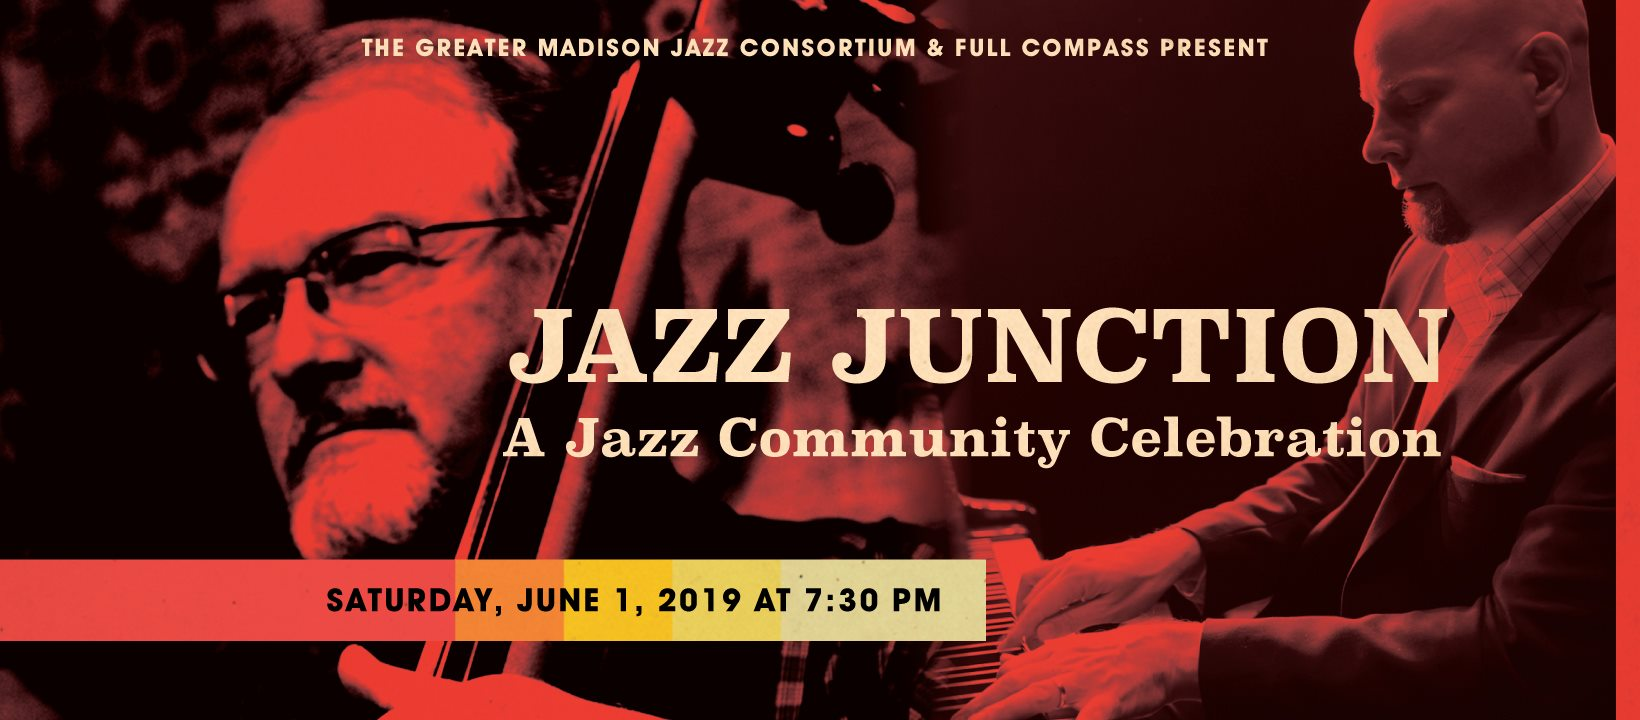 "Photo of Schaffer playing bass and text reading ""The Greater Madison Jazz Consortium and Full Compass present Jazz Junction: A Jazz Community Celebration"" Saturday, June 1, 2019 at 7:30 p.m."""